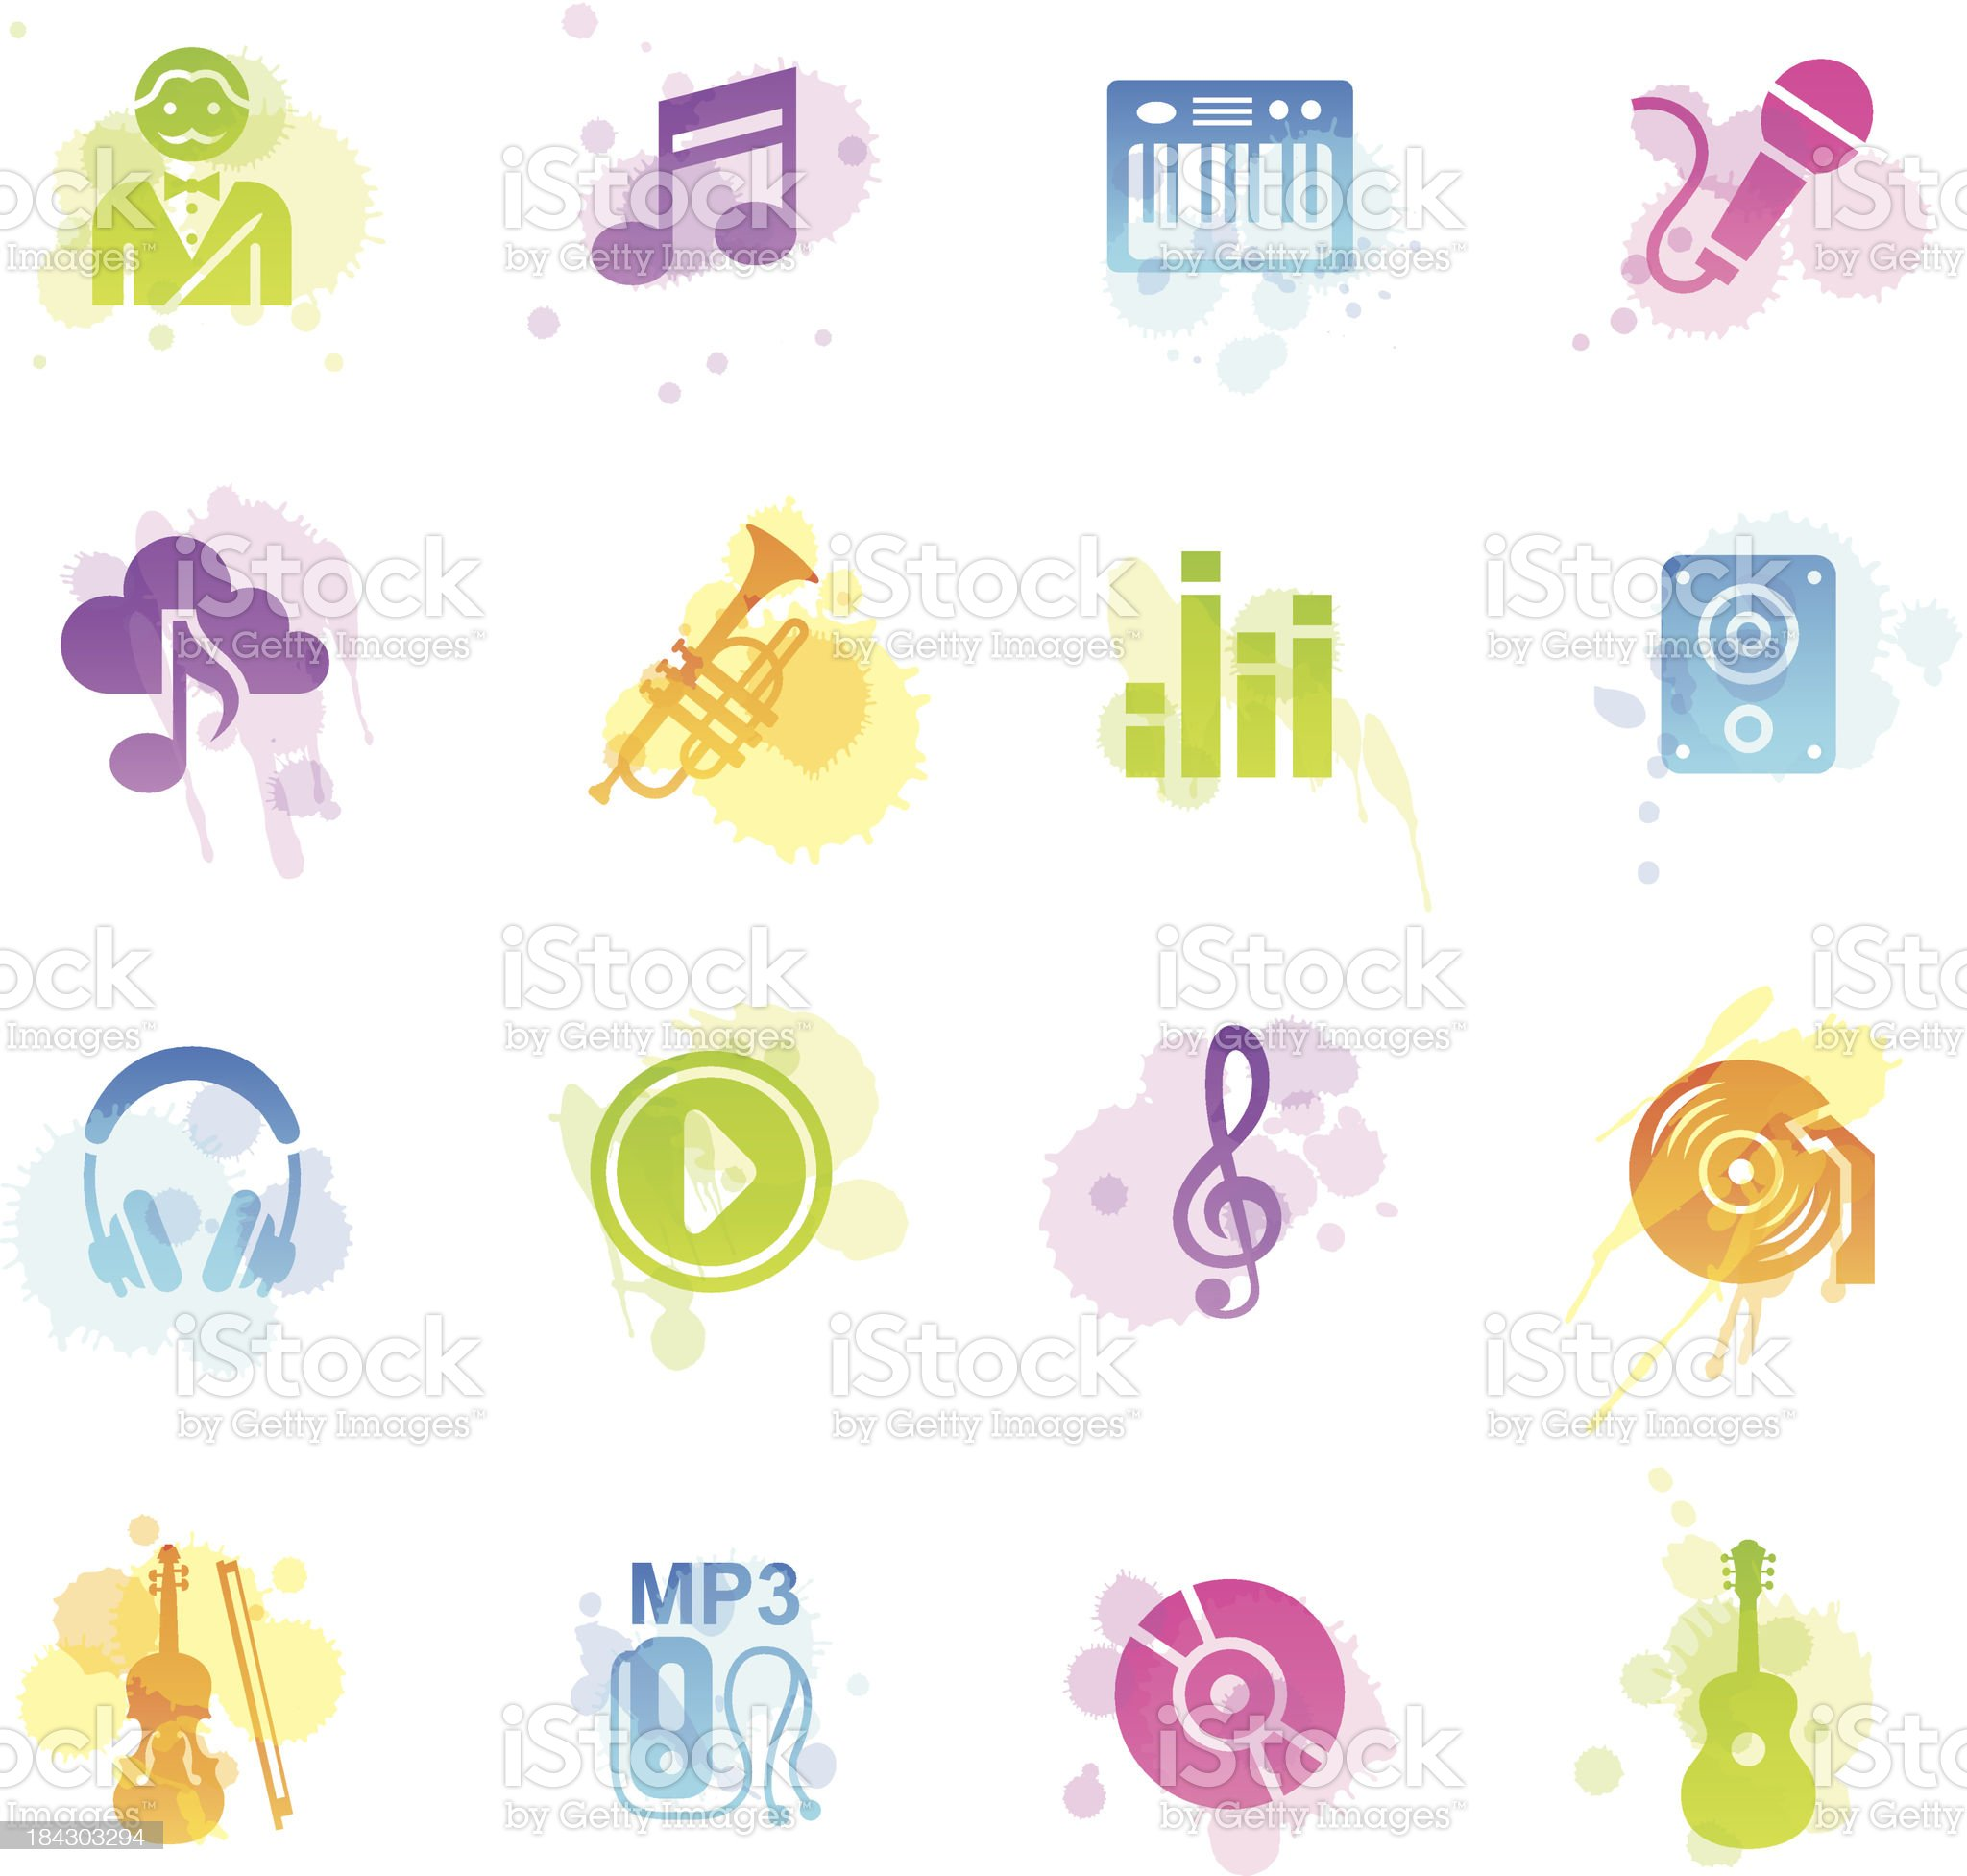 Stains Icons - Music royalty-free stock vector art